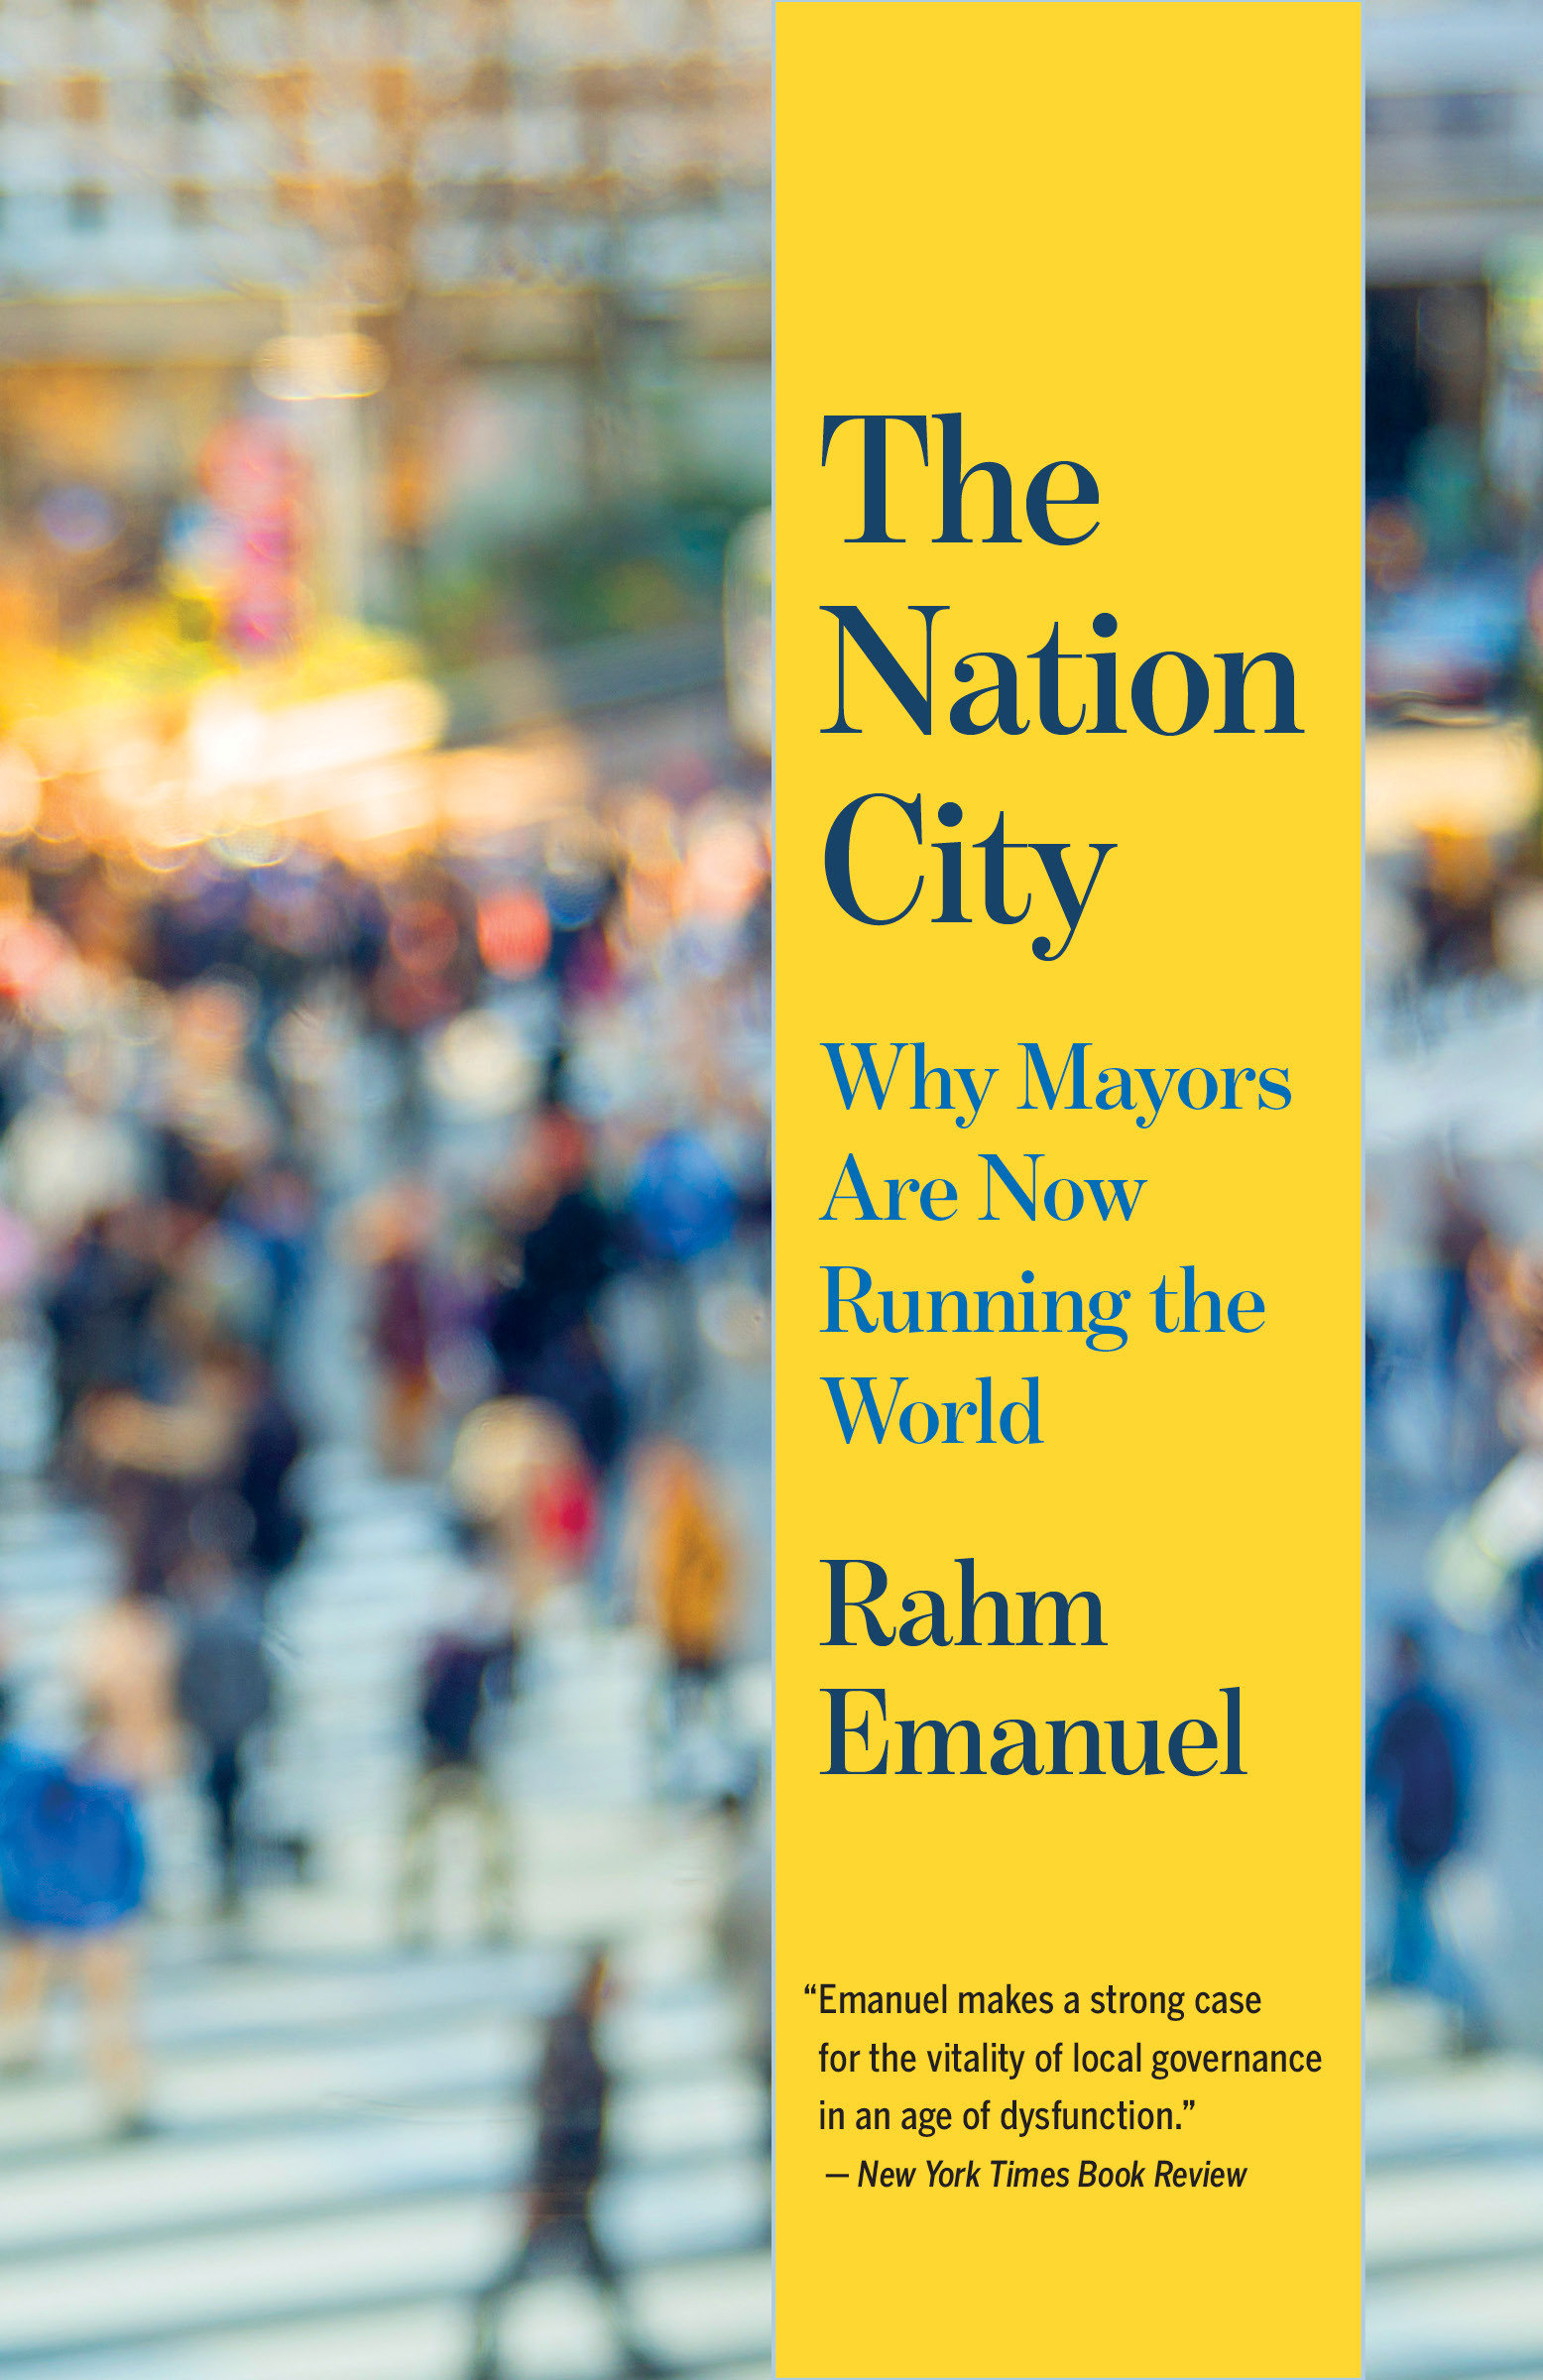 The nation city why mayors are now running the world cover image